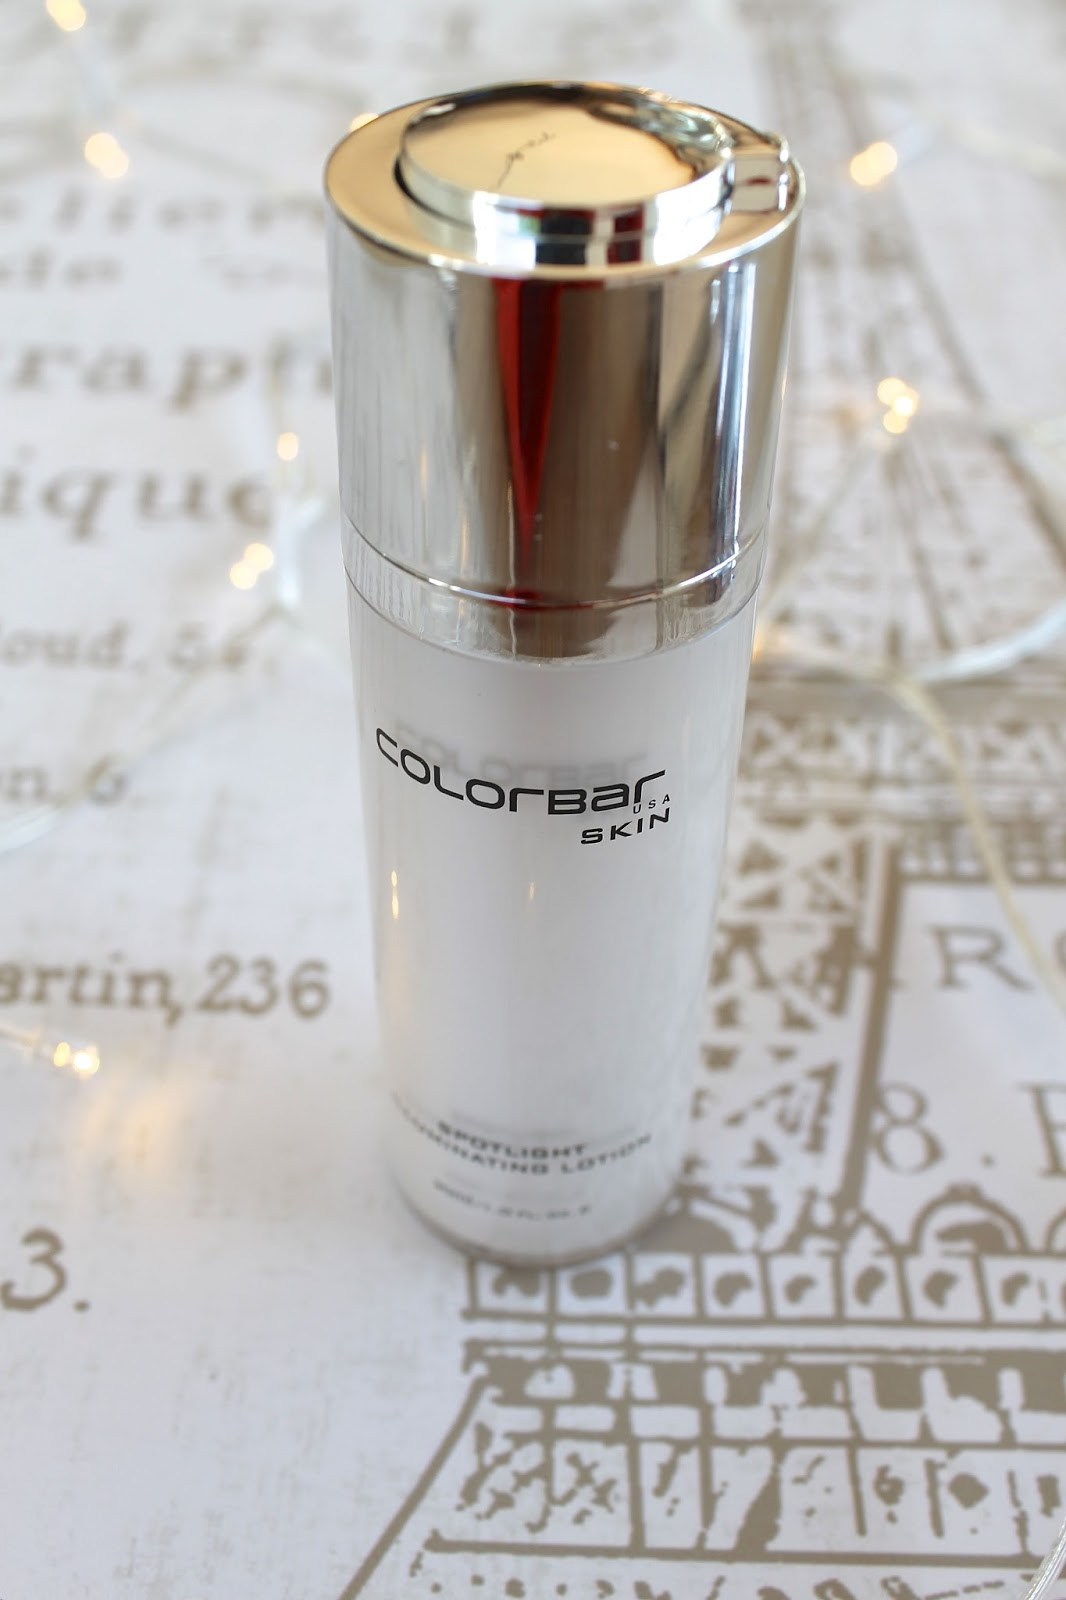 Colorbar cosmetics illuminating lotion